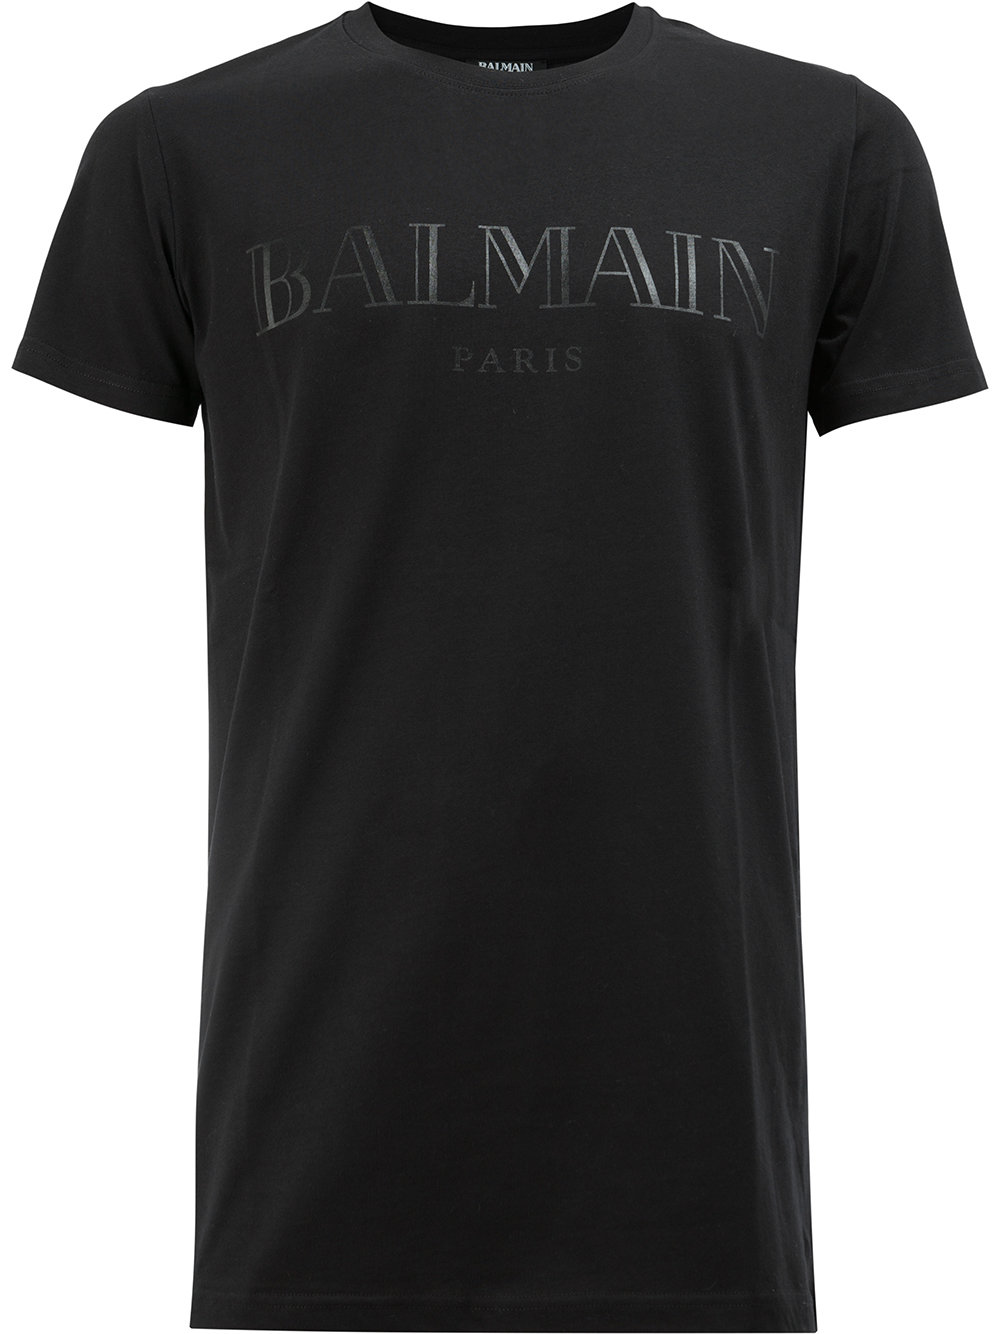 Balmain   All Black Logo Tee